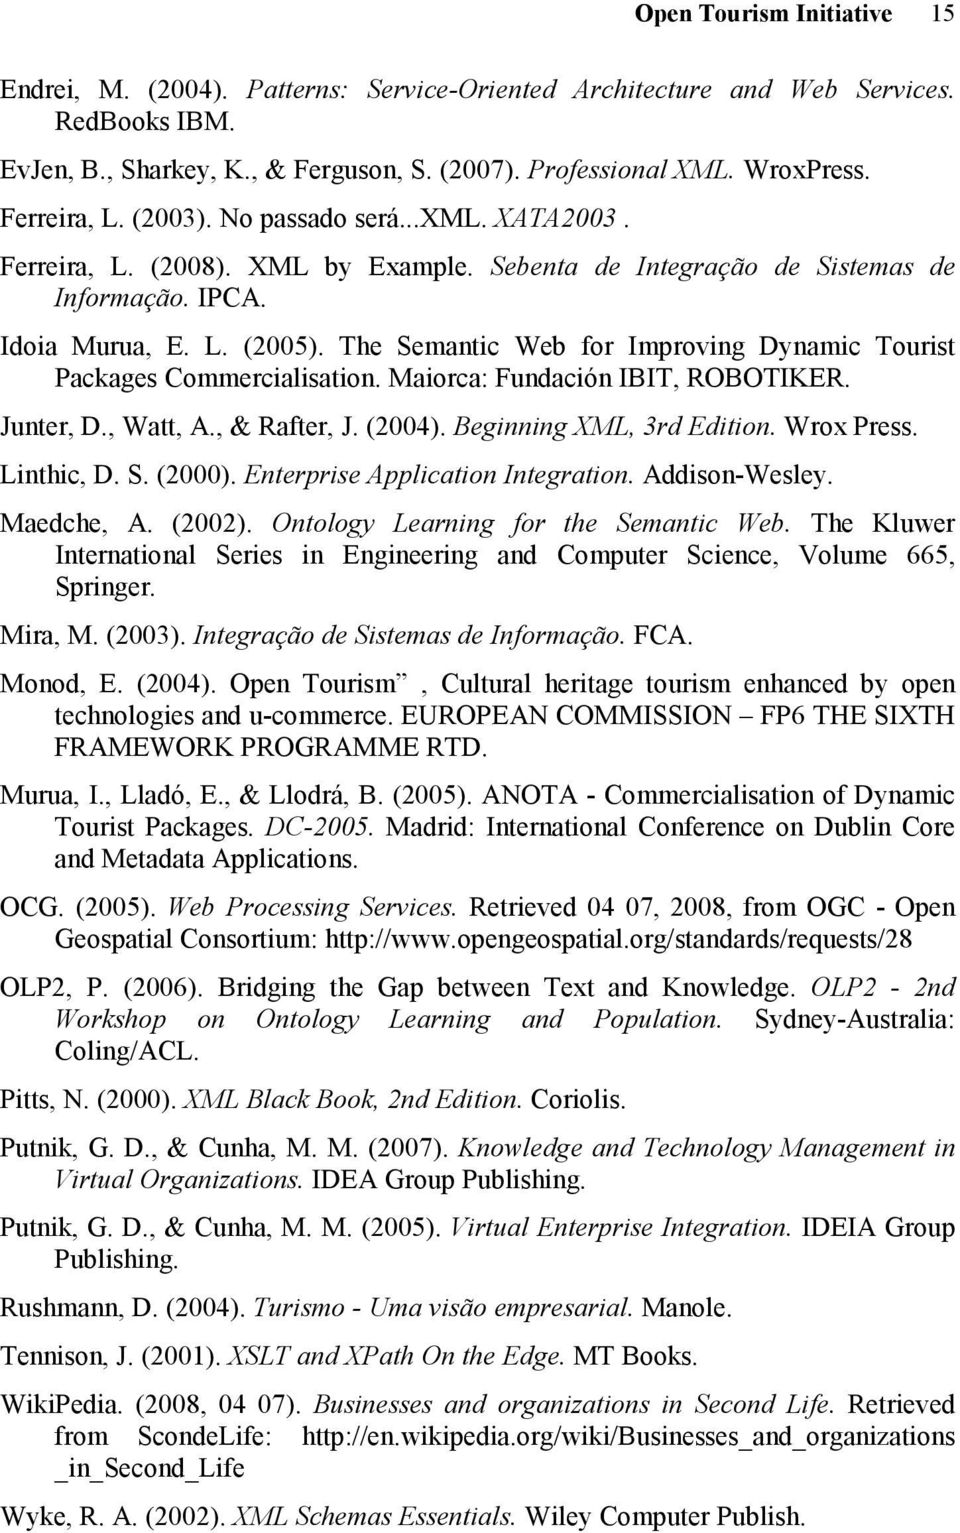 The Semantic Web for Improving Dynamic Tourist Packages Commercialisation. Maiorca: Fundación IBIT, ROBOTIKER. Junter, D., Watt, A., & Rafter, J. (2004). Beginning XML, 3rd Edition. Wrox Press.